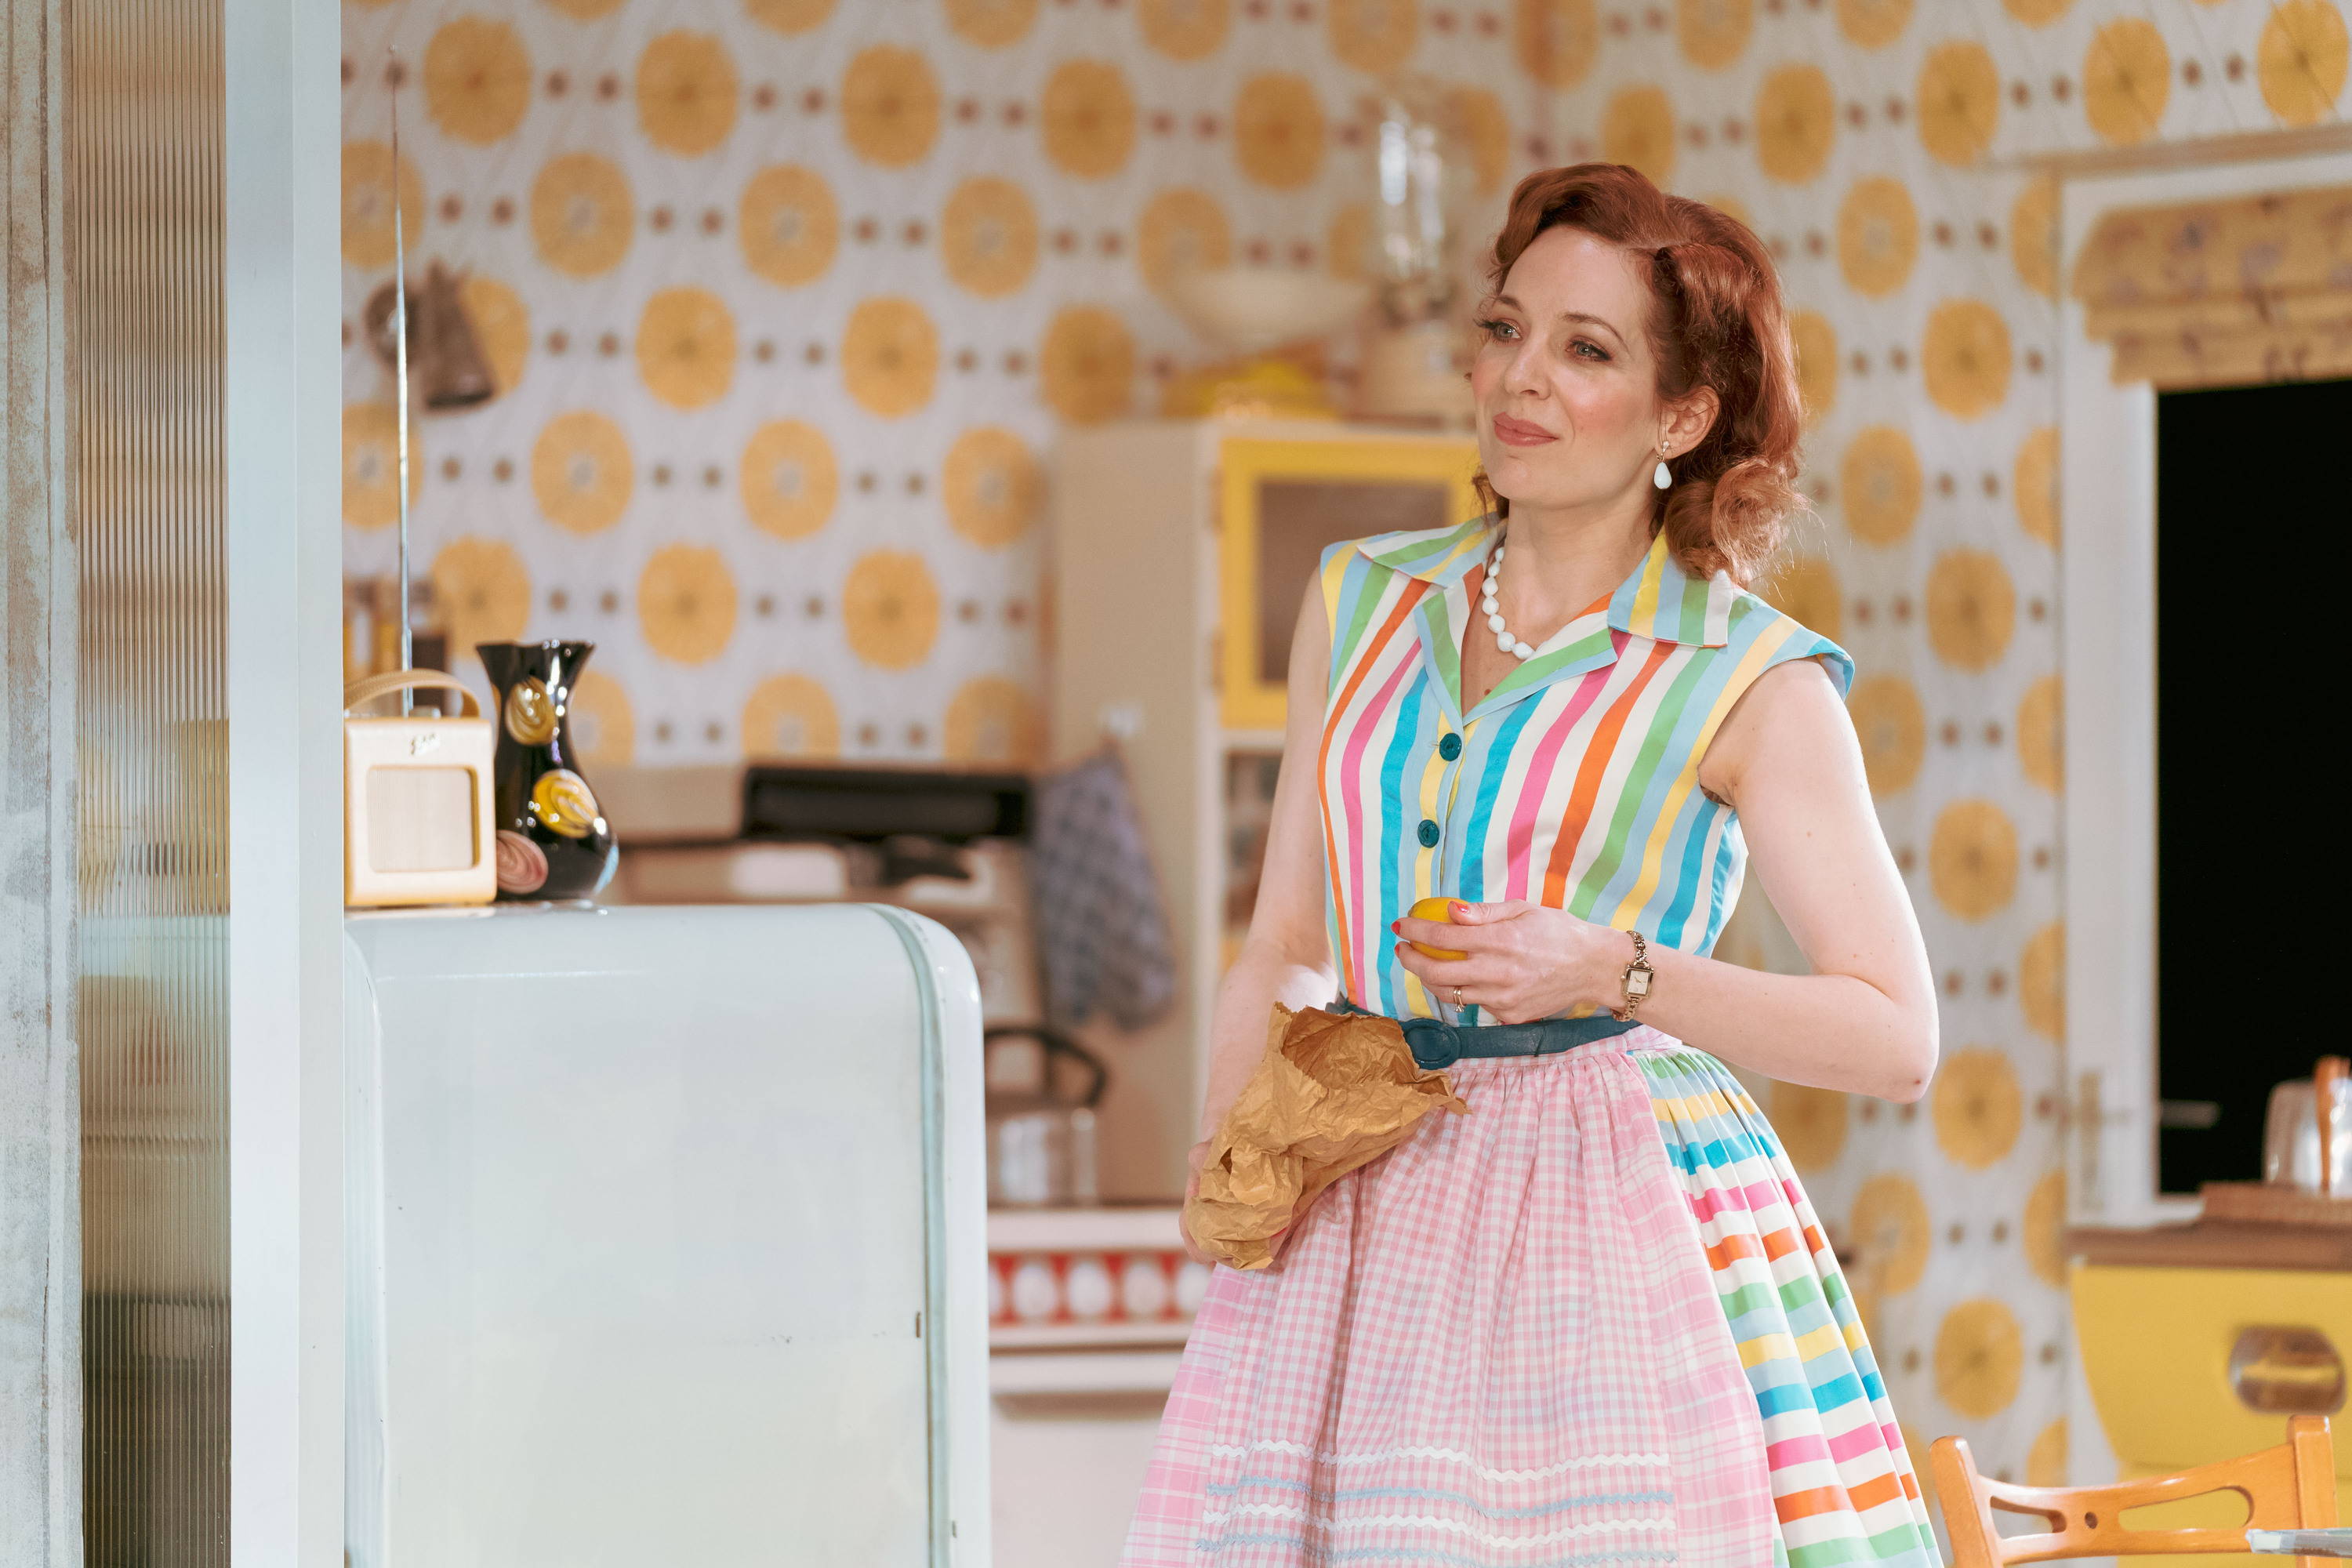 Home, I'm Darling, Katherine Parkinson